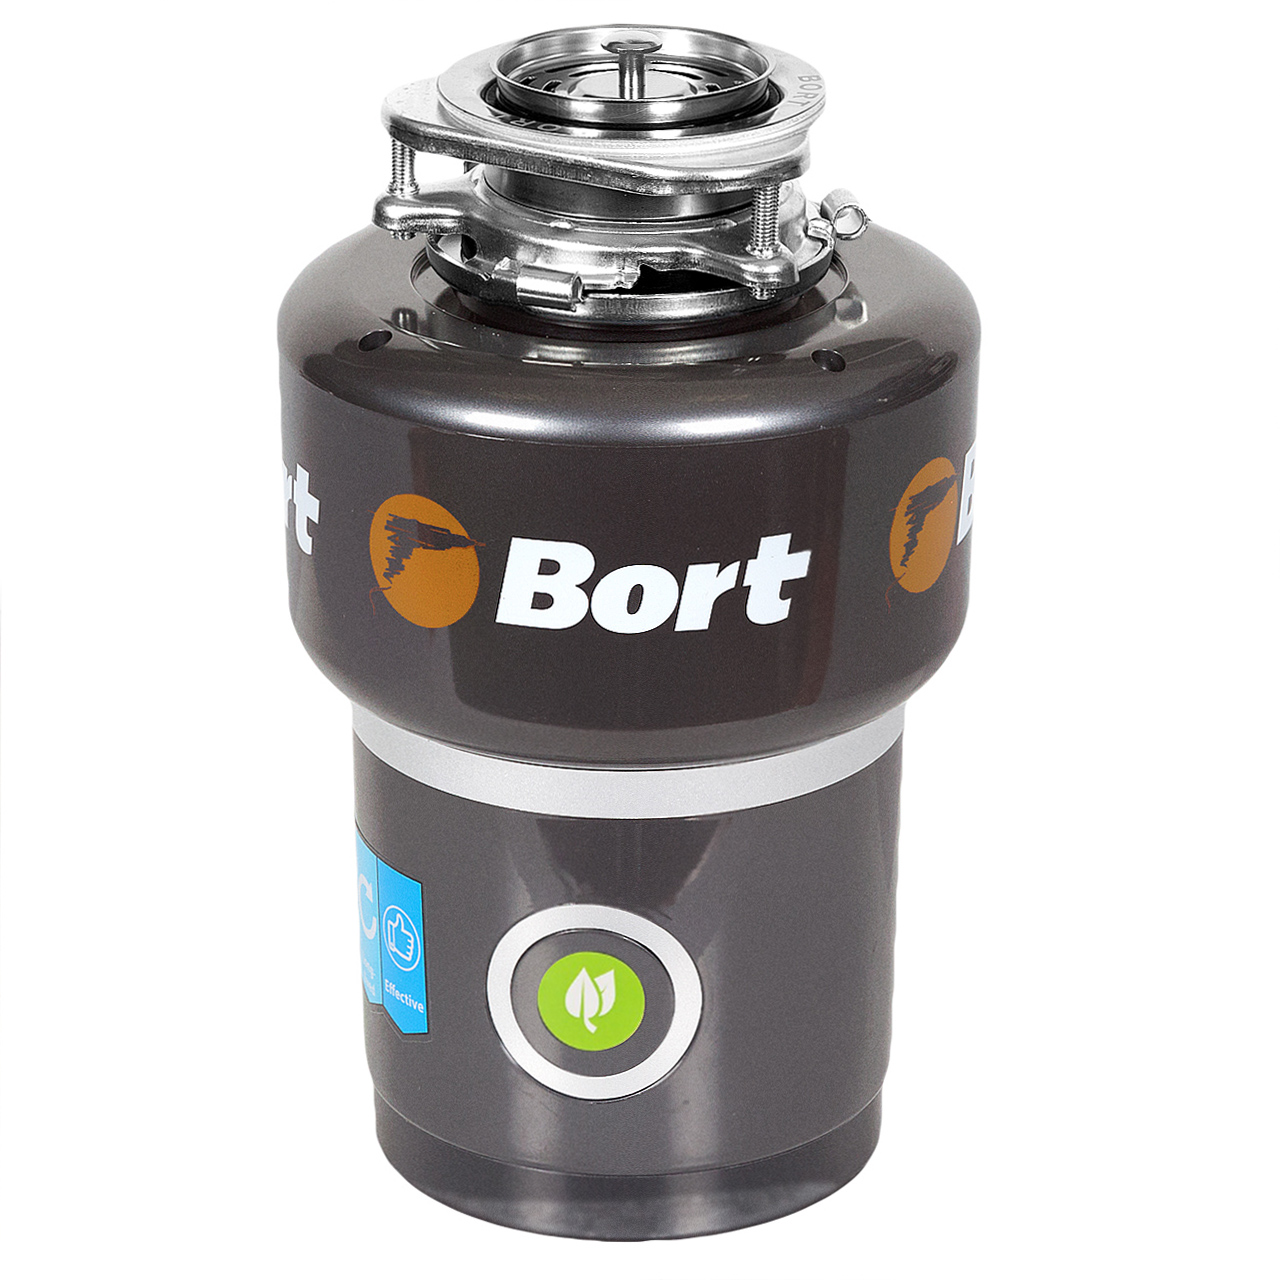 Chopper food waste disposer Bort TITAN 5000 (Control) 3 stage grinding, power 560 W, remote control for mhouse gtx4 gtx4c tx4 remote control 433mhz rolling code